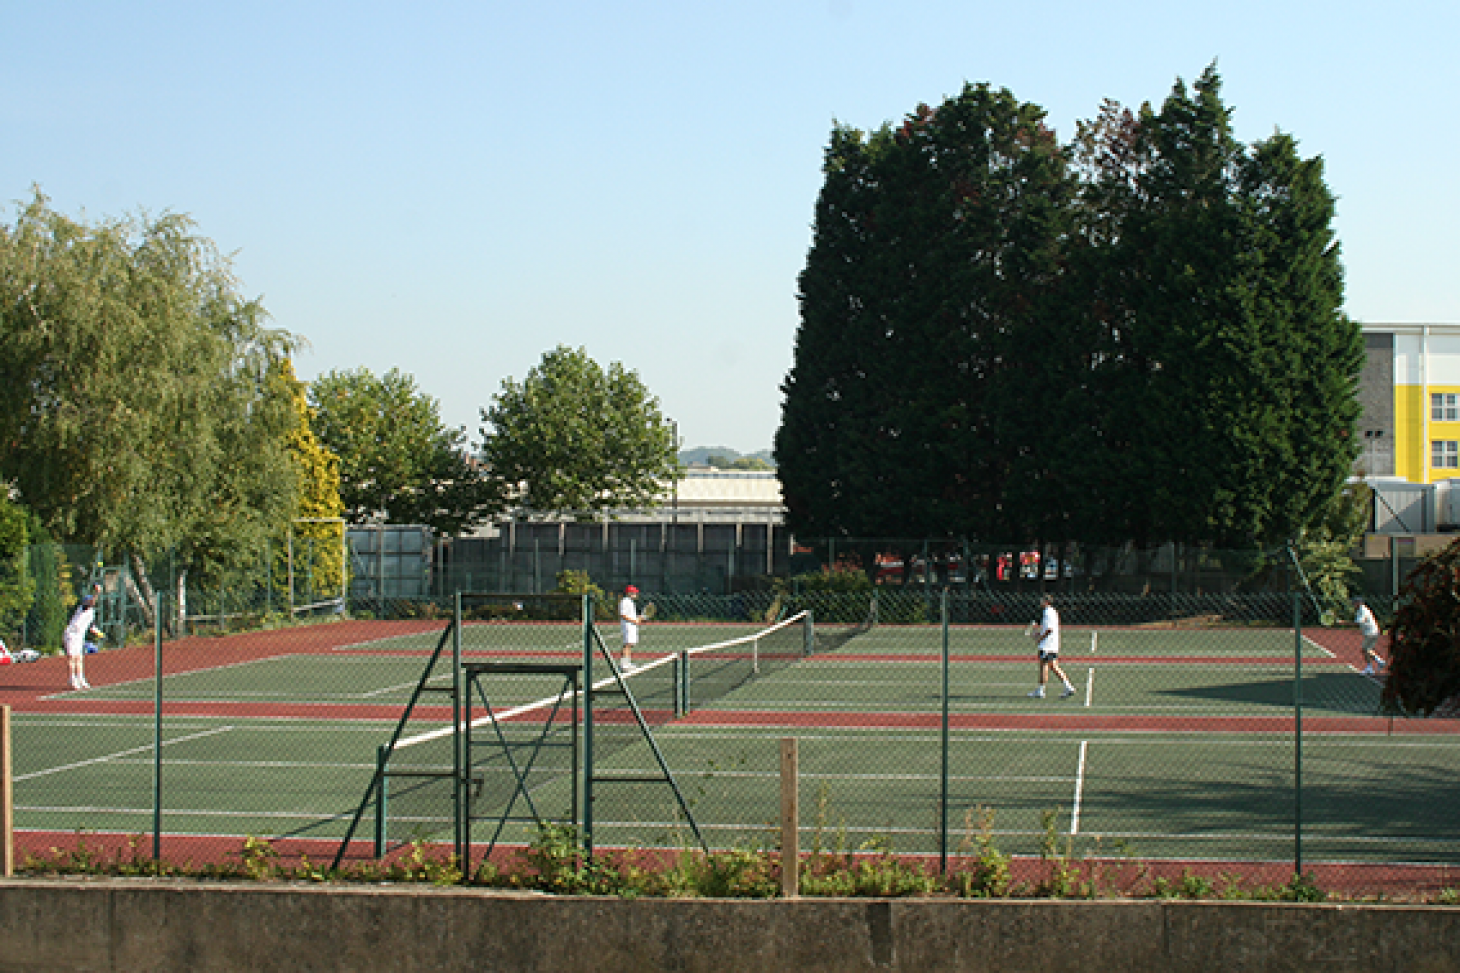 West Norwood Lawn Tennis Club Outdoor | Hard (macadam) tennis court